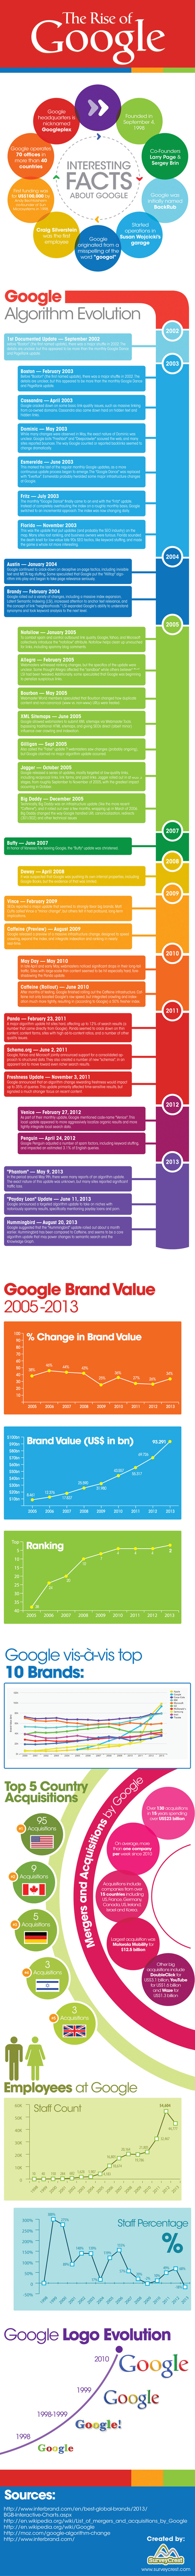 The Rise of Google [Infographic] | English Classroom | Scoop.it